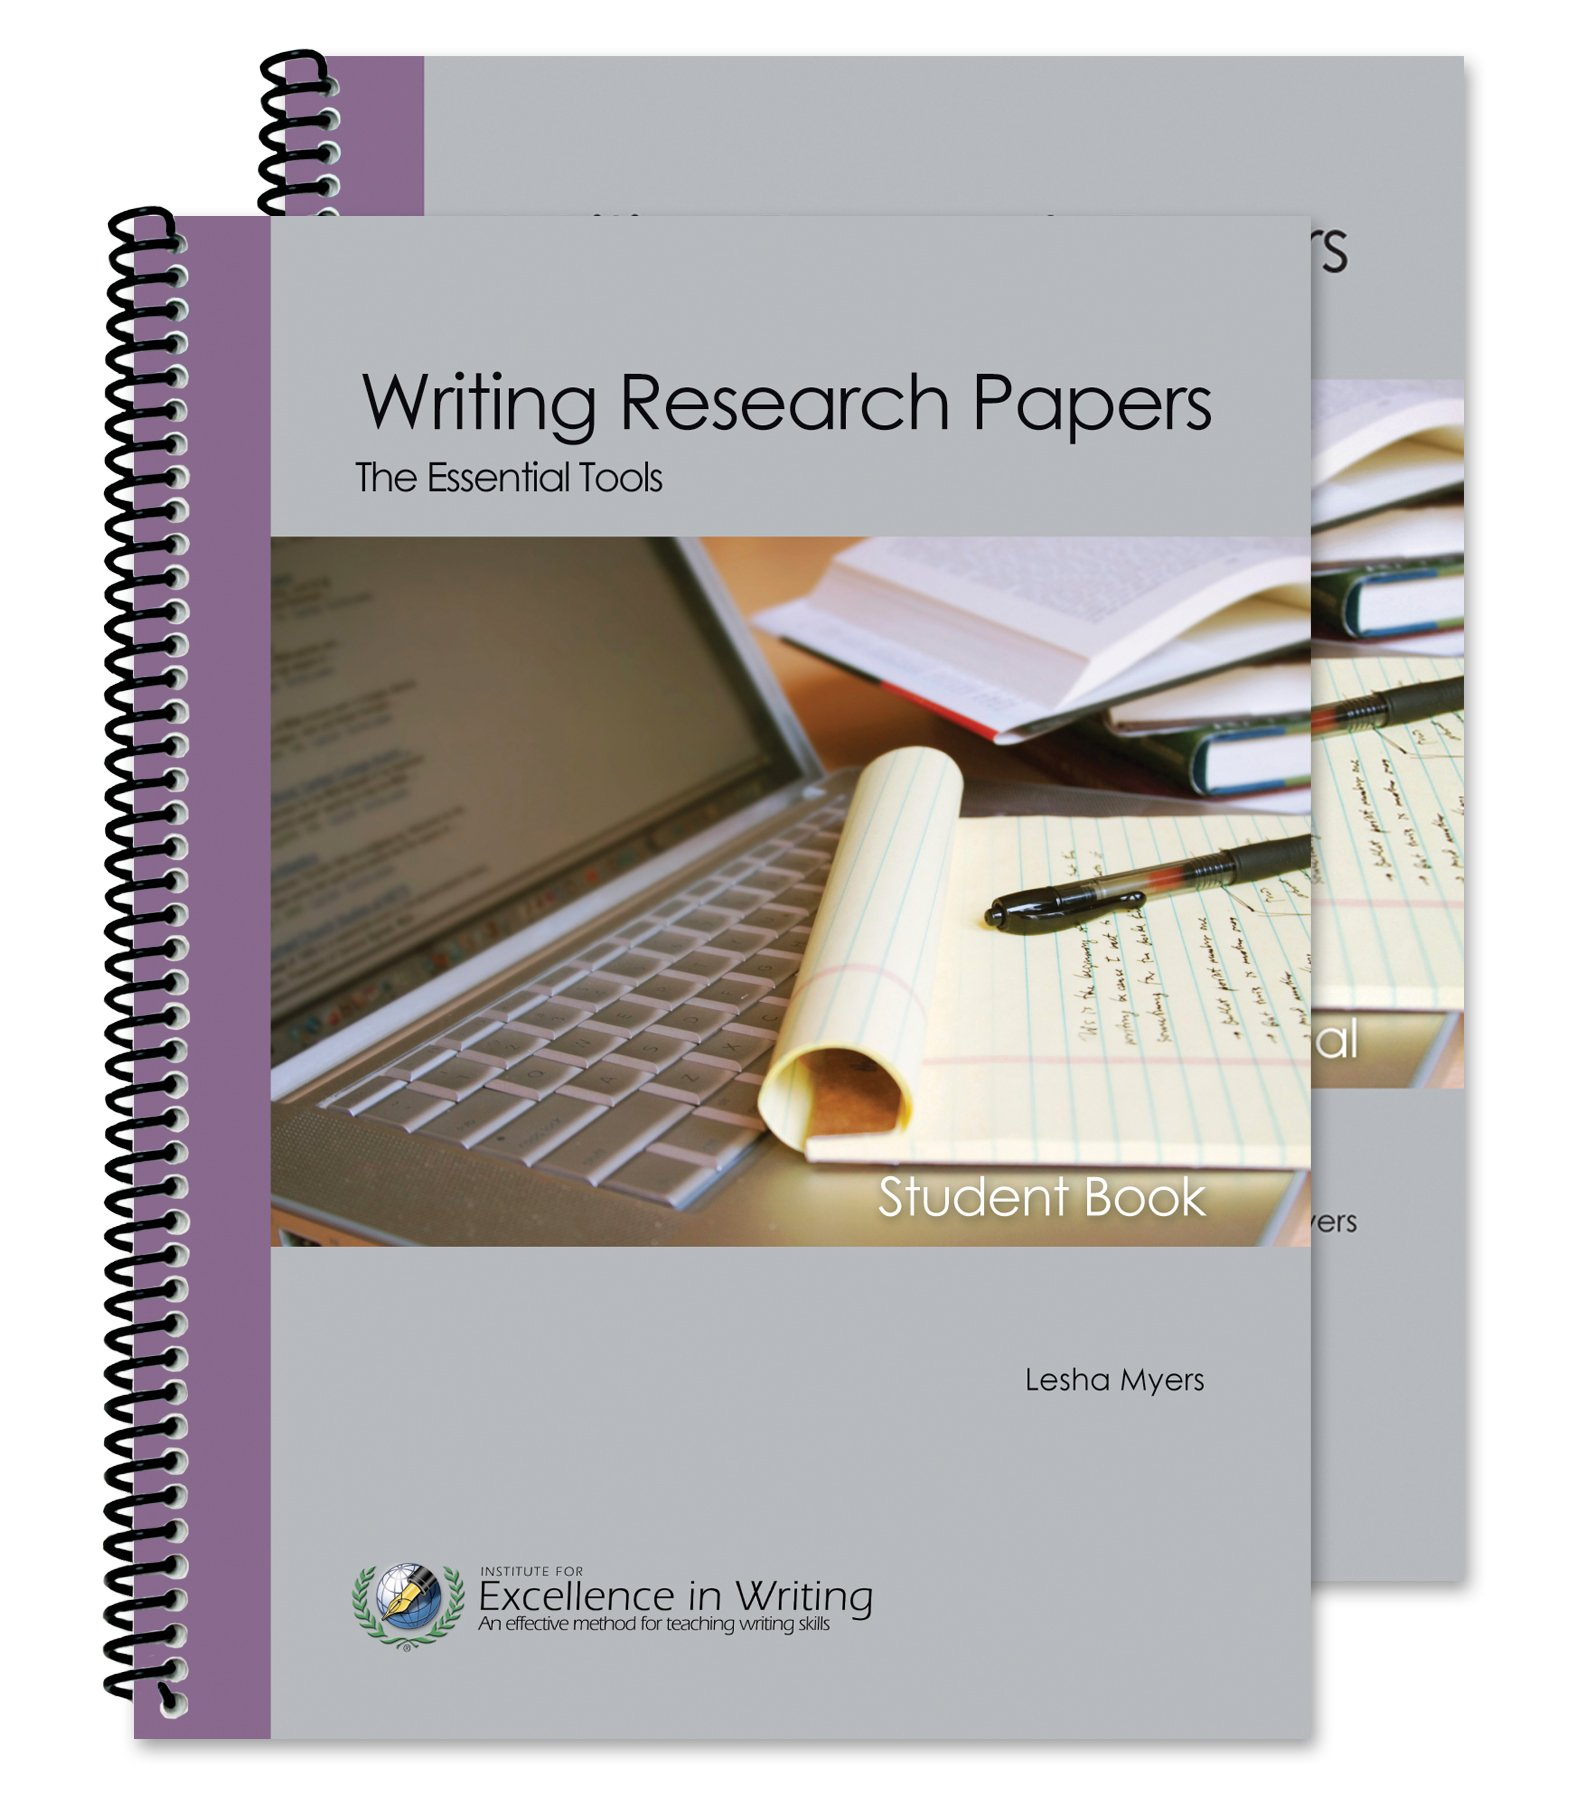 Writing Research Papers: The Essential Tools (Teacher/Student Combo) PDF